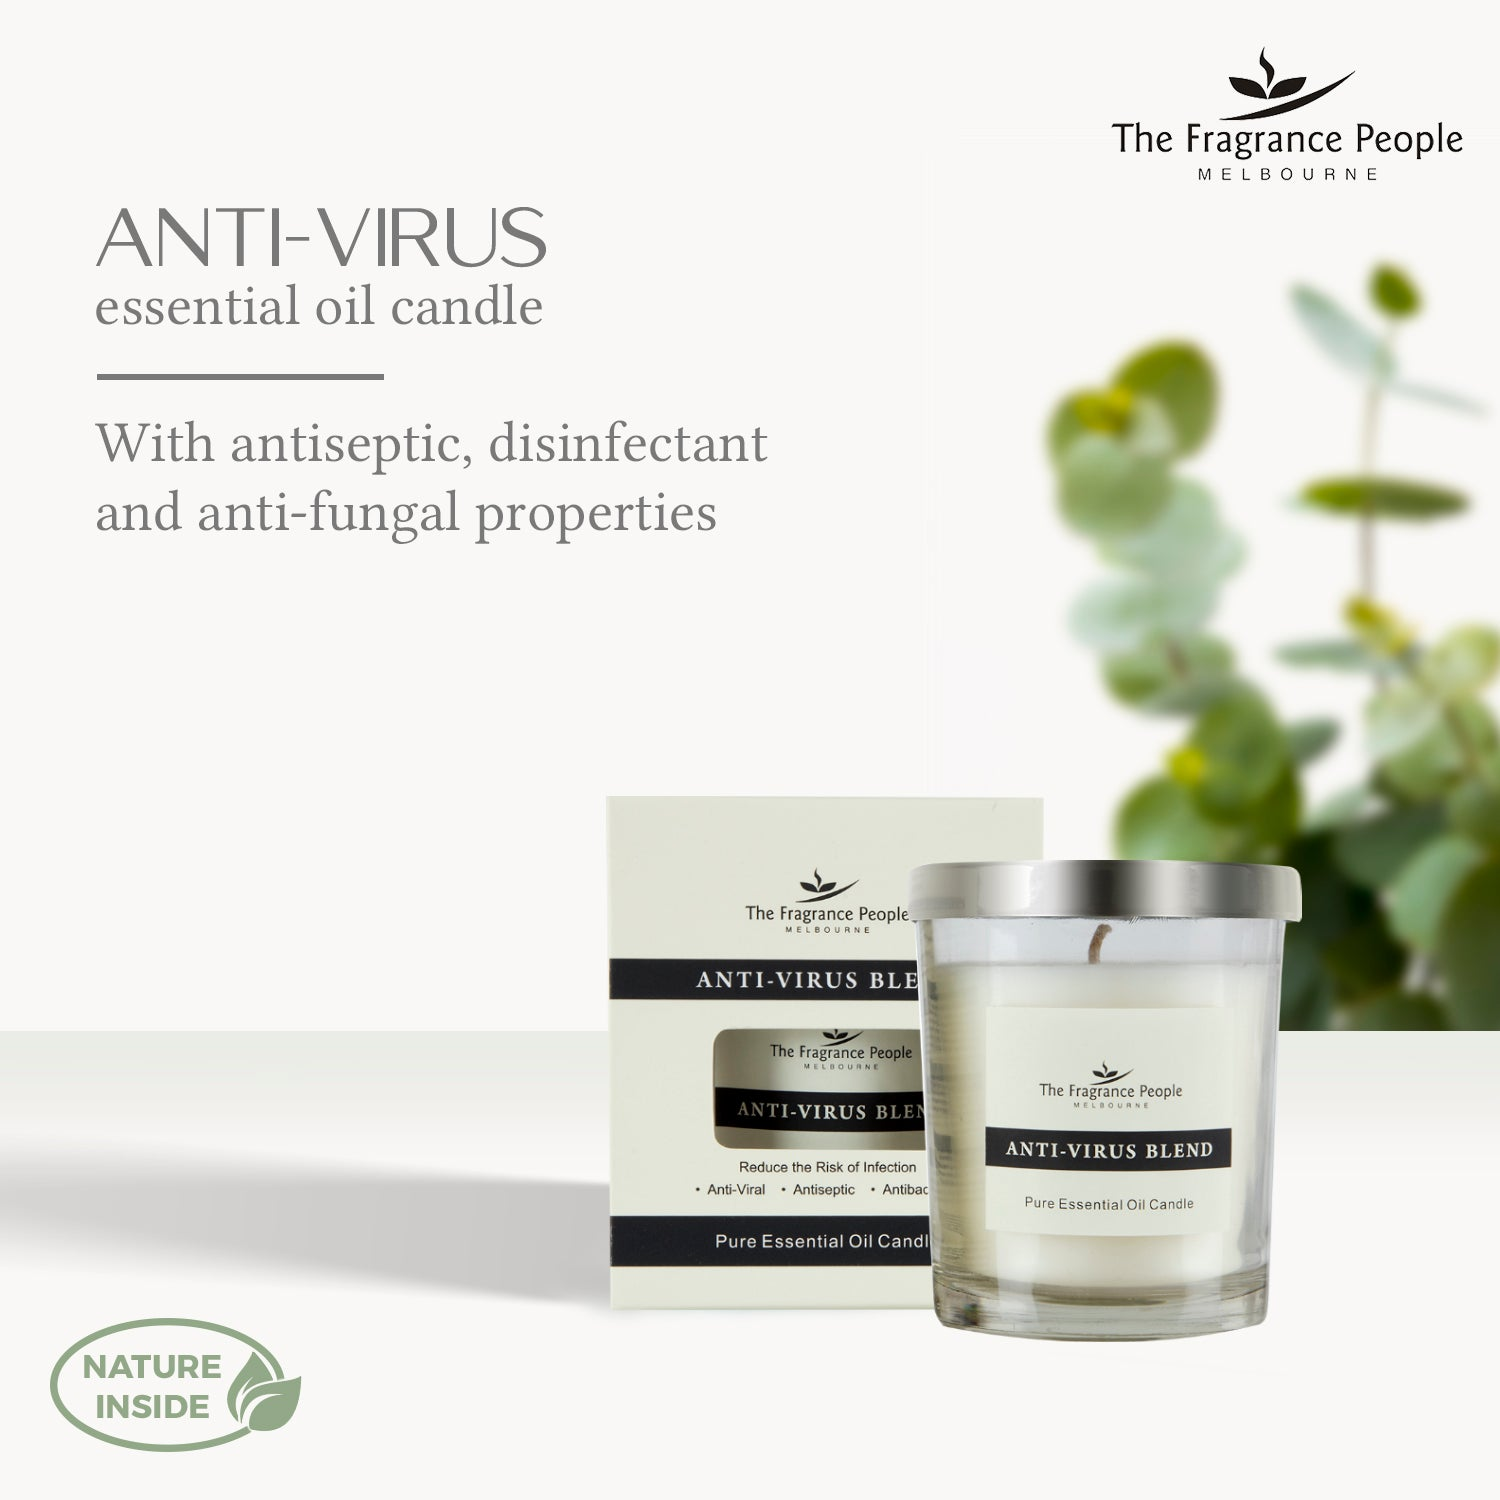 Anti Virus Pure Essential Oil Candle